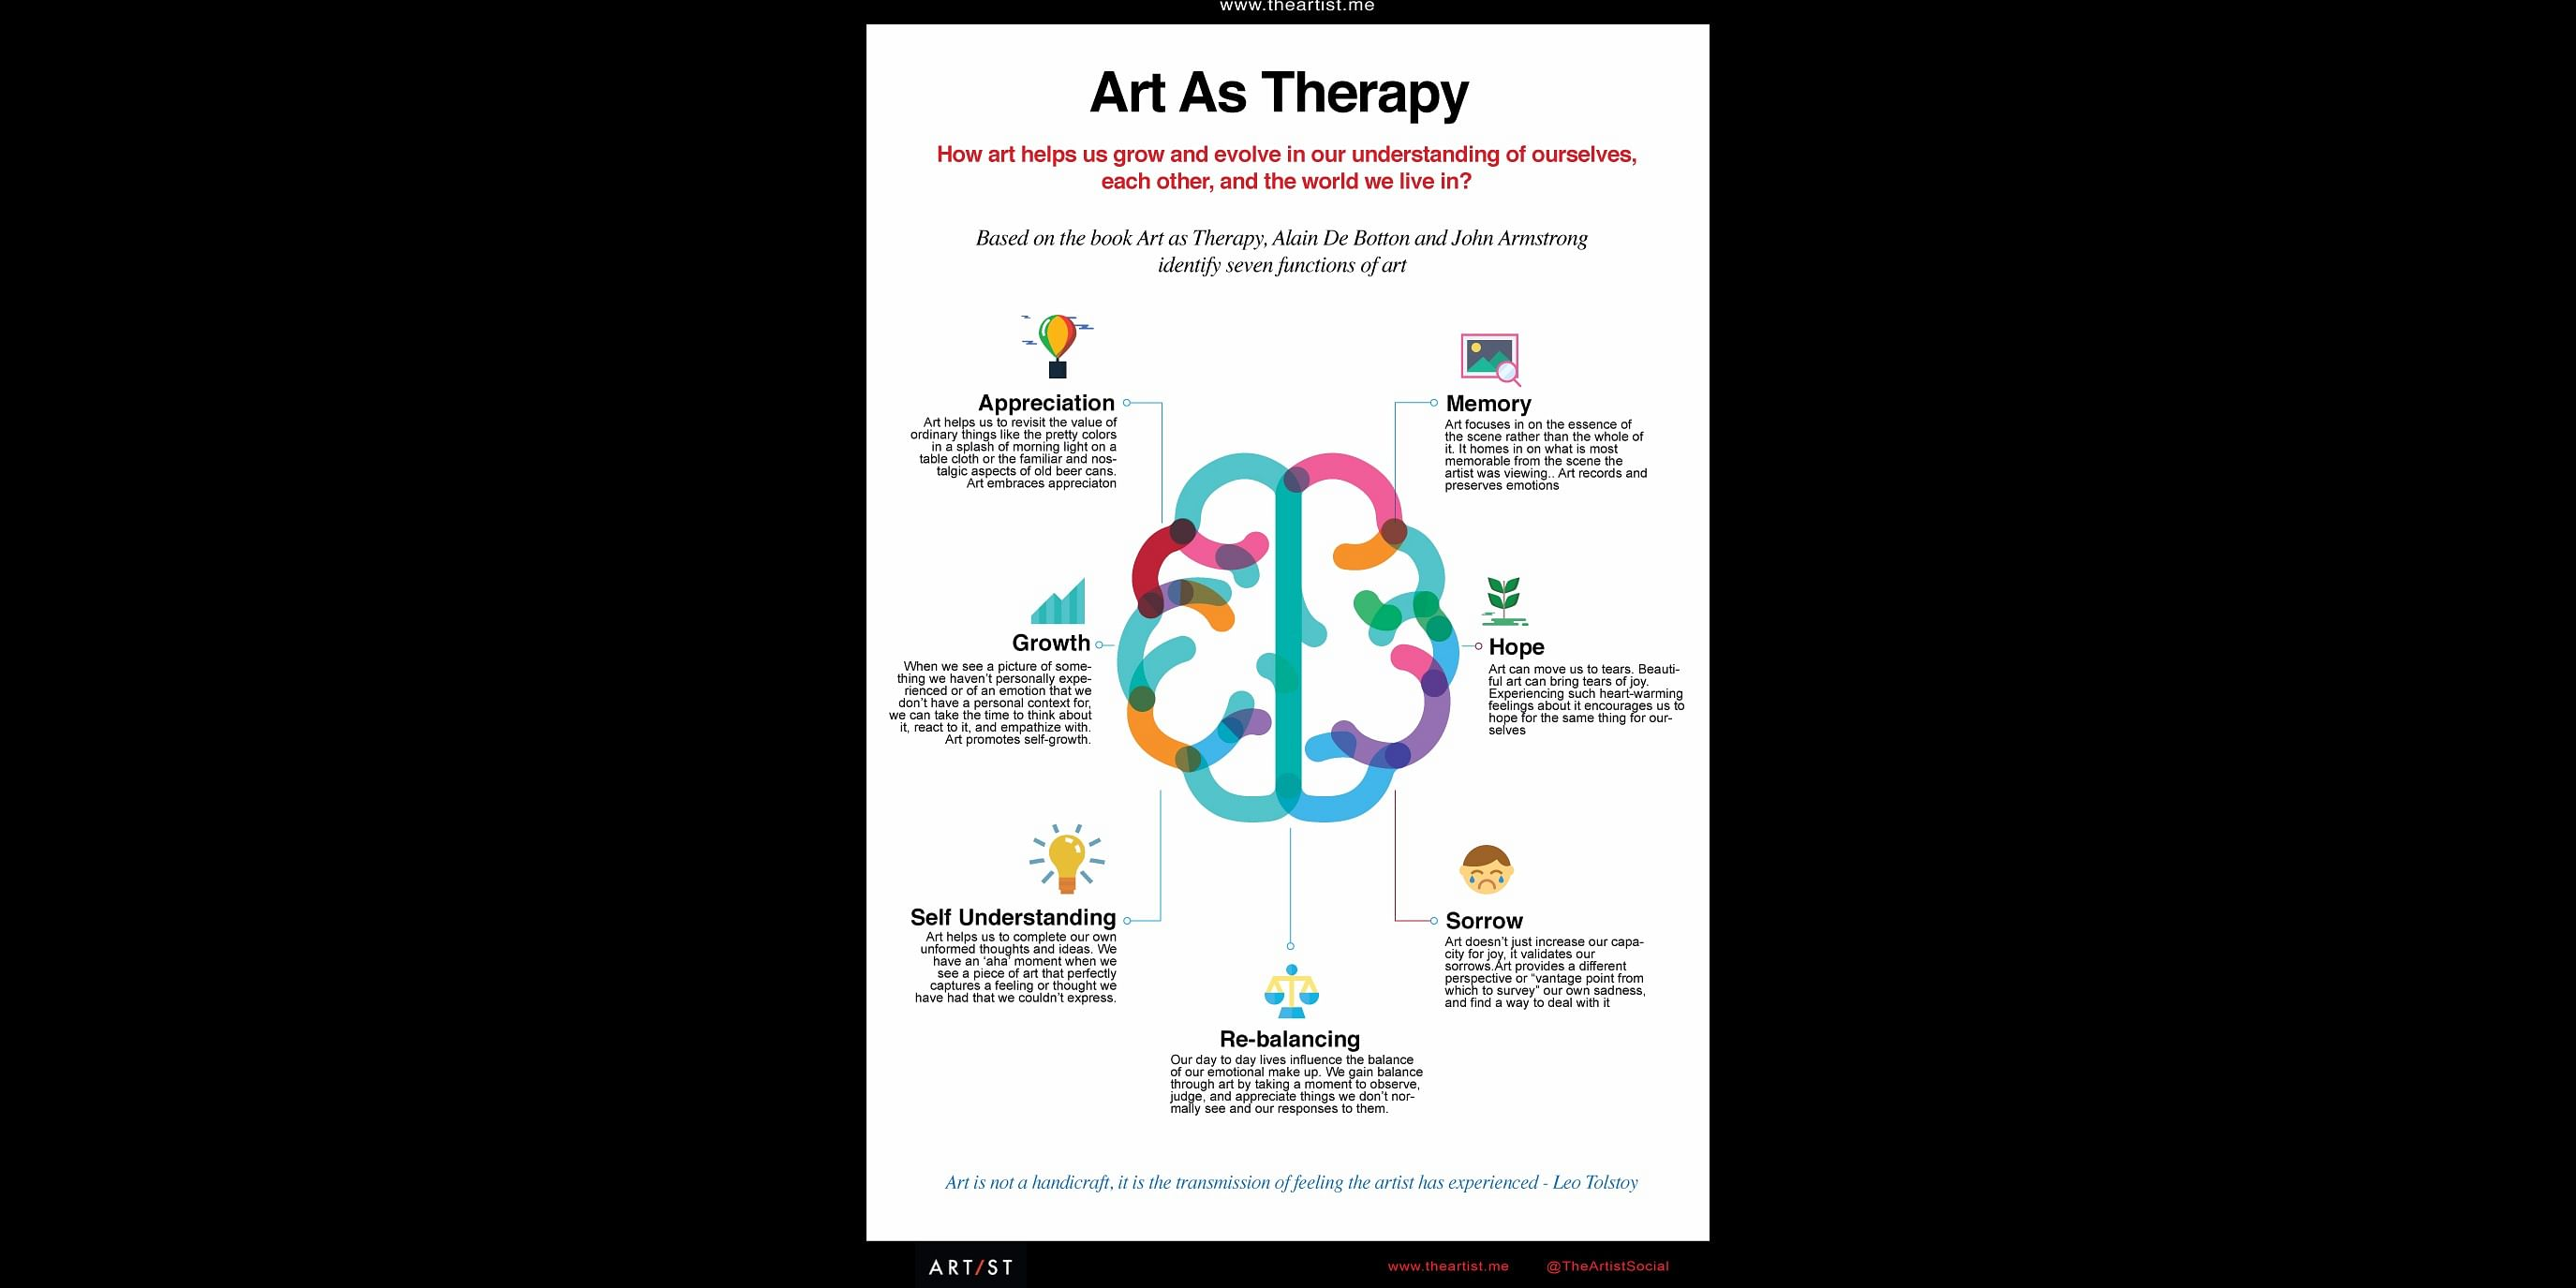 Art as Therapy  Infographics (Courtesy - theartist.me)